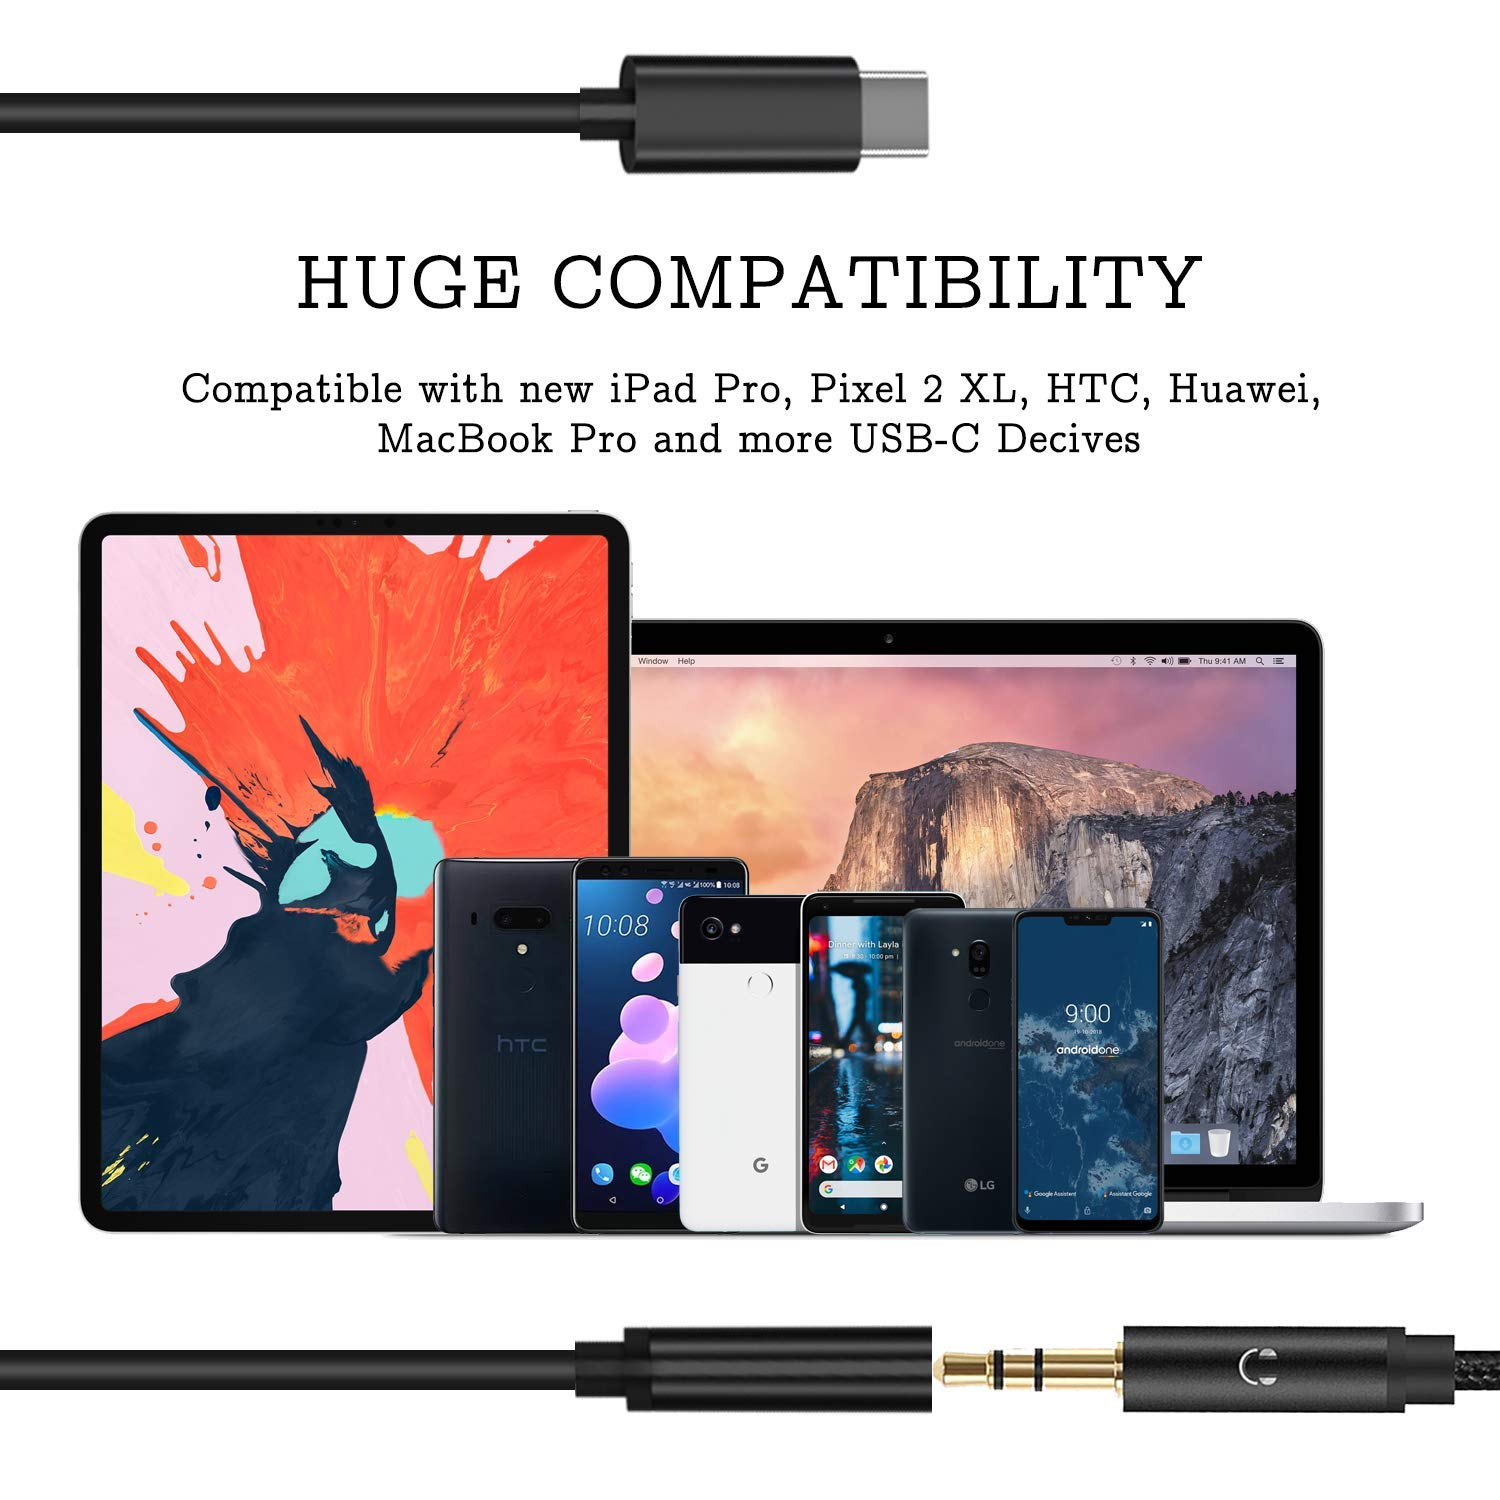 Type C Audio Adapter Cable with DAC Chip//Hi-Res Compatible with New i Pad Pro 2018//Pixel 3 2 XL//Huawei Mate 20 /& P20 Pro CASRO USB-C to 3.5mm Headphone Jack Adapter Compatible for Pixel 2 3 XL